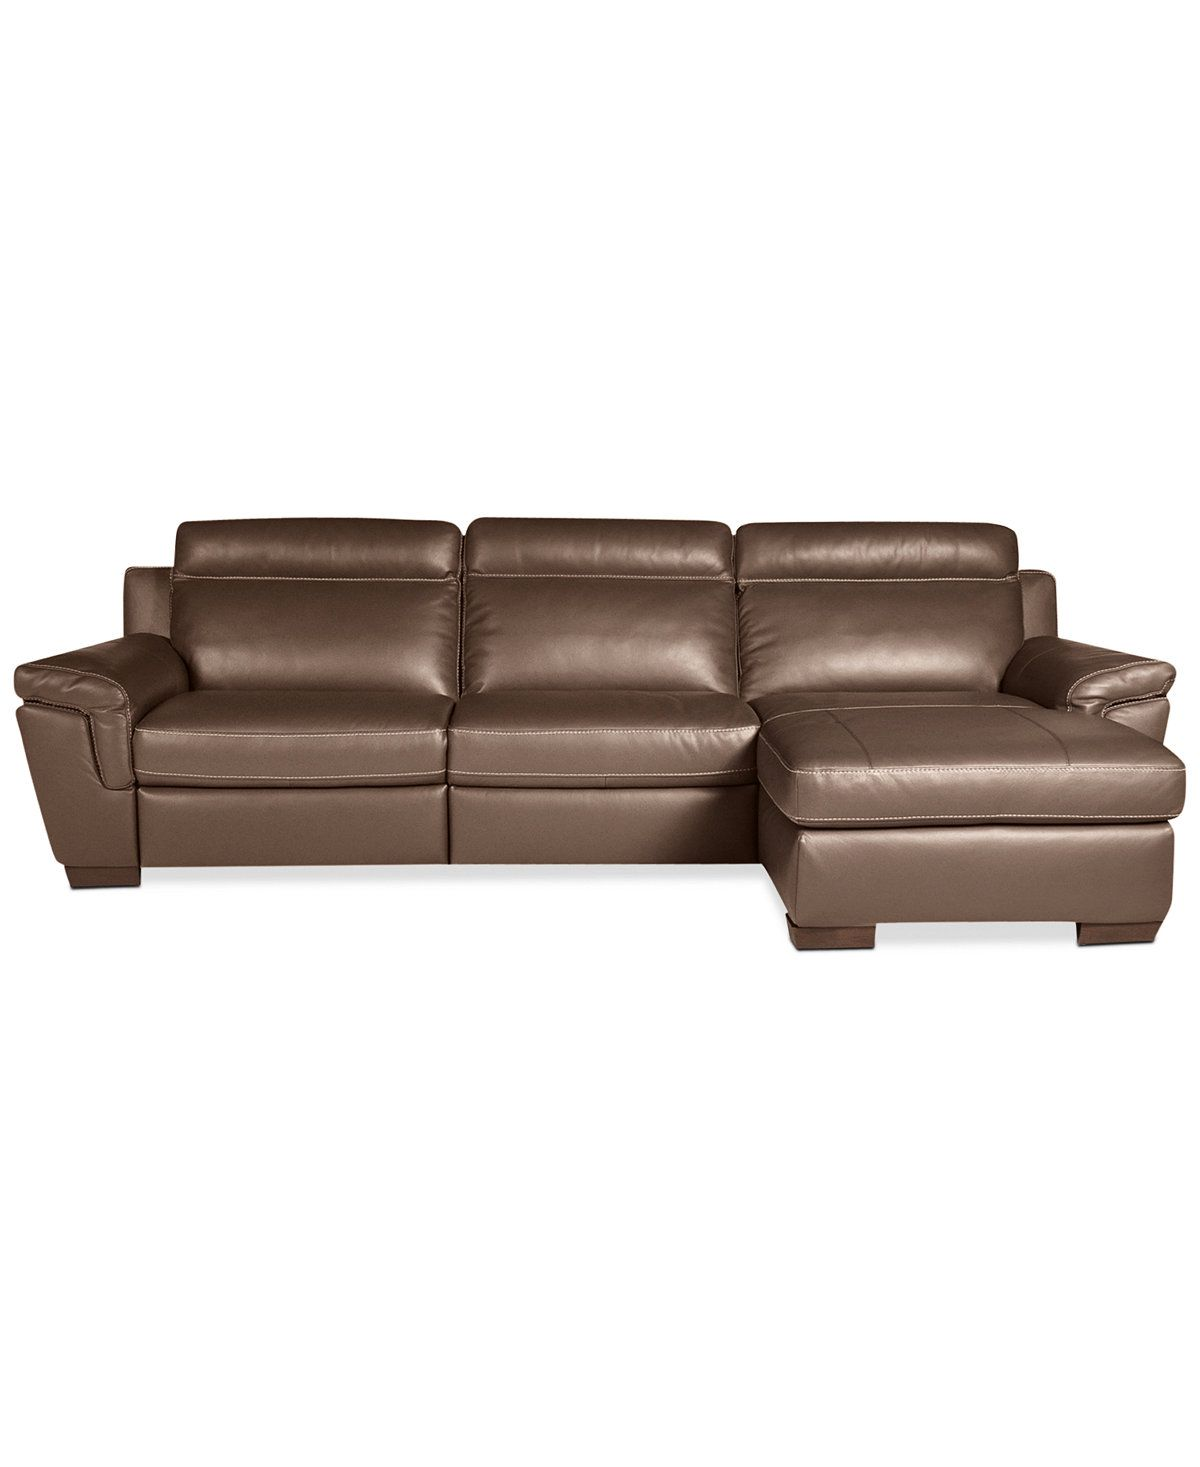 Julius 3 Pc Leather Sectional Sofa With Chaise With 2 Power Recliners Only At Macy S Furn Leather Chaise Sectional Sectional Sofa With Chaise Leather Chaise